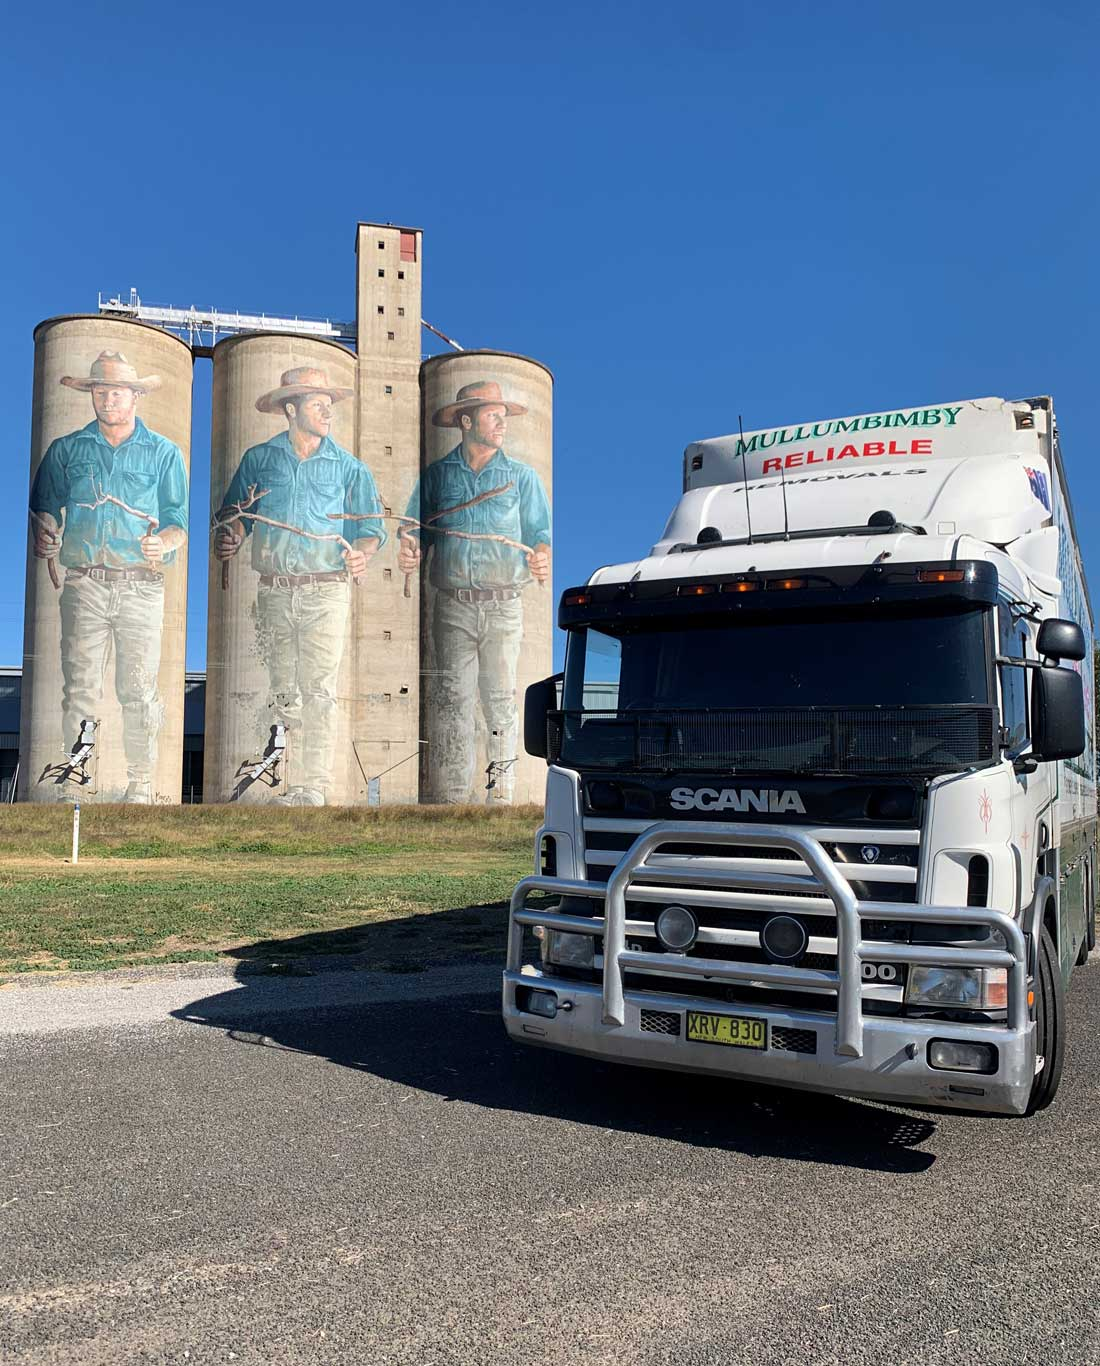 Mullumbimby Removals delivering to Northern Rivers NSW